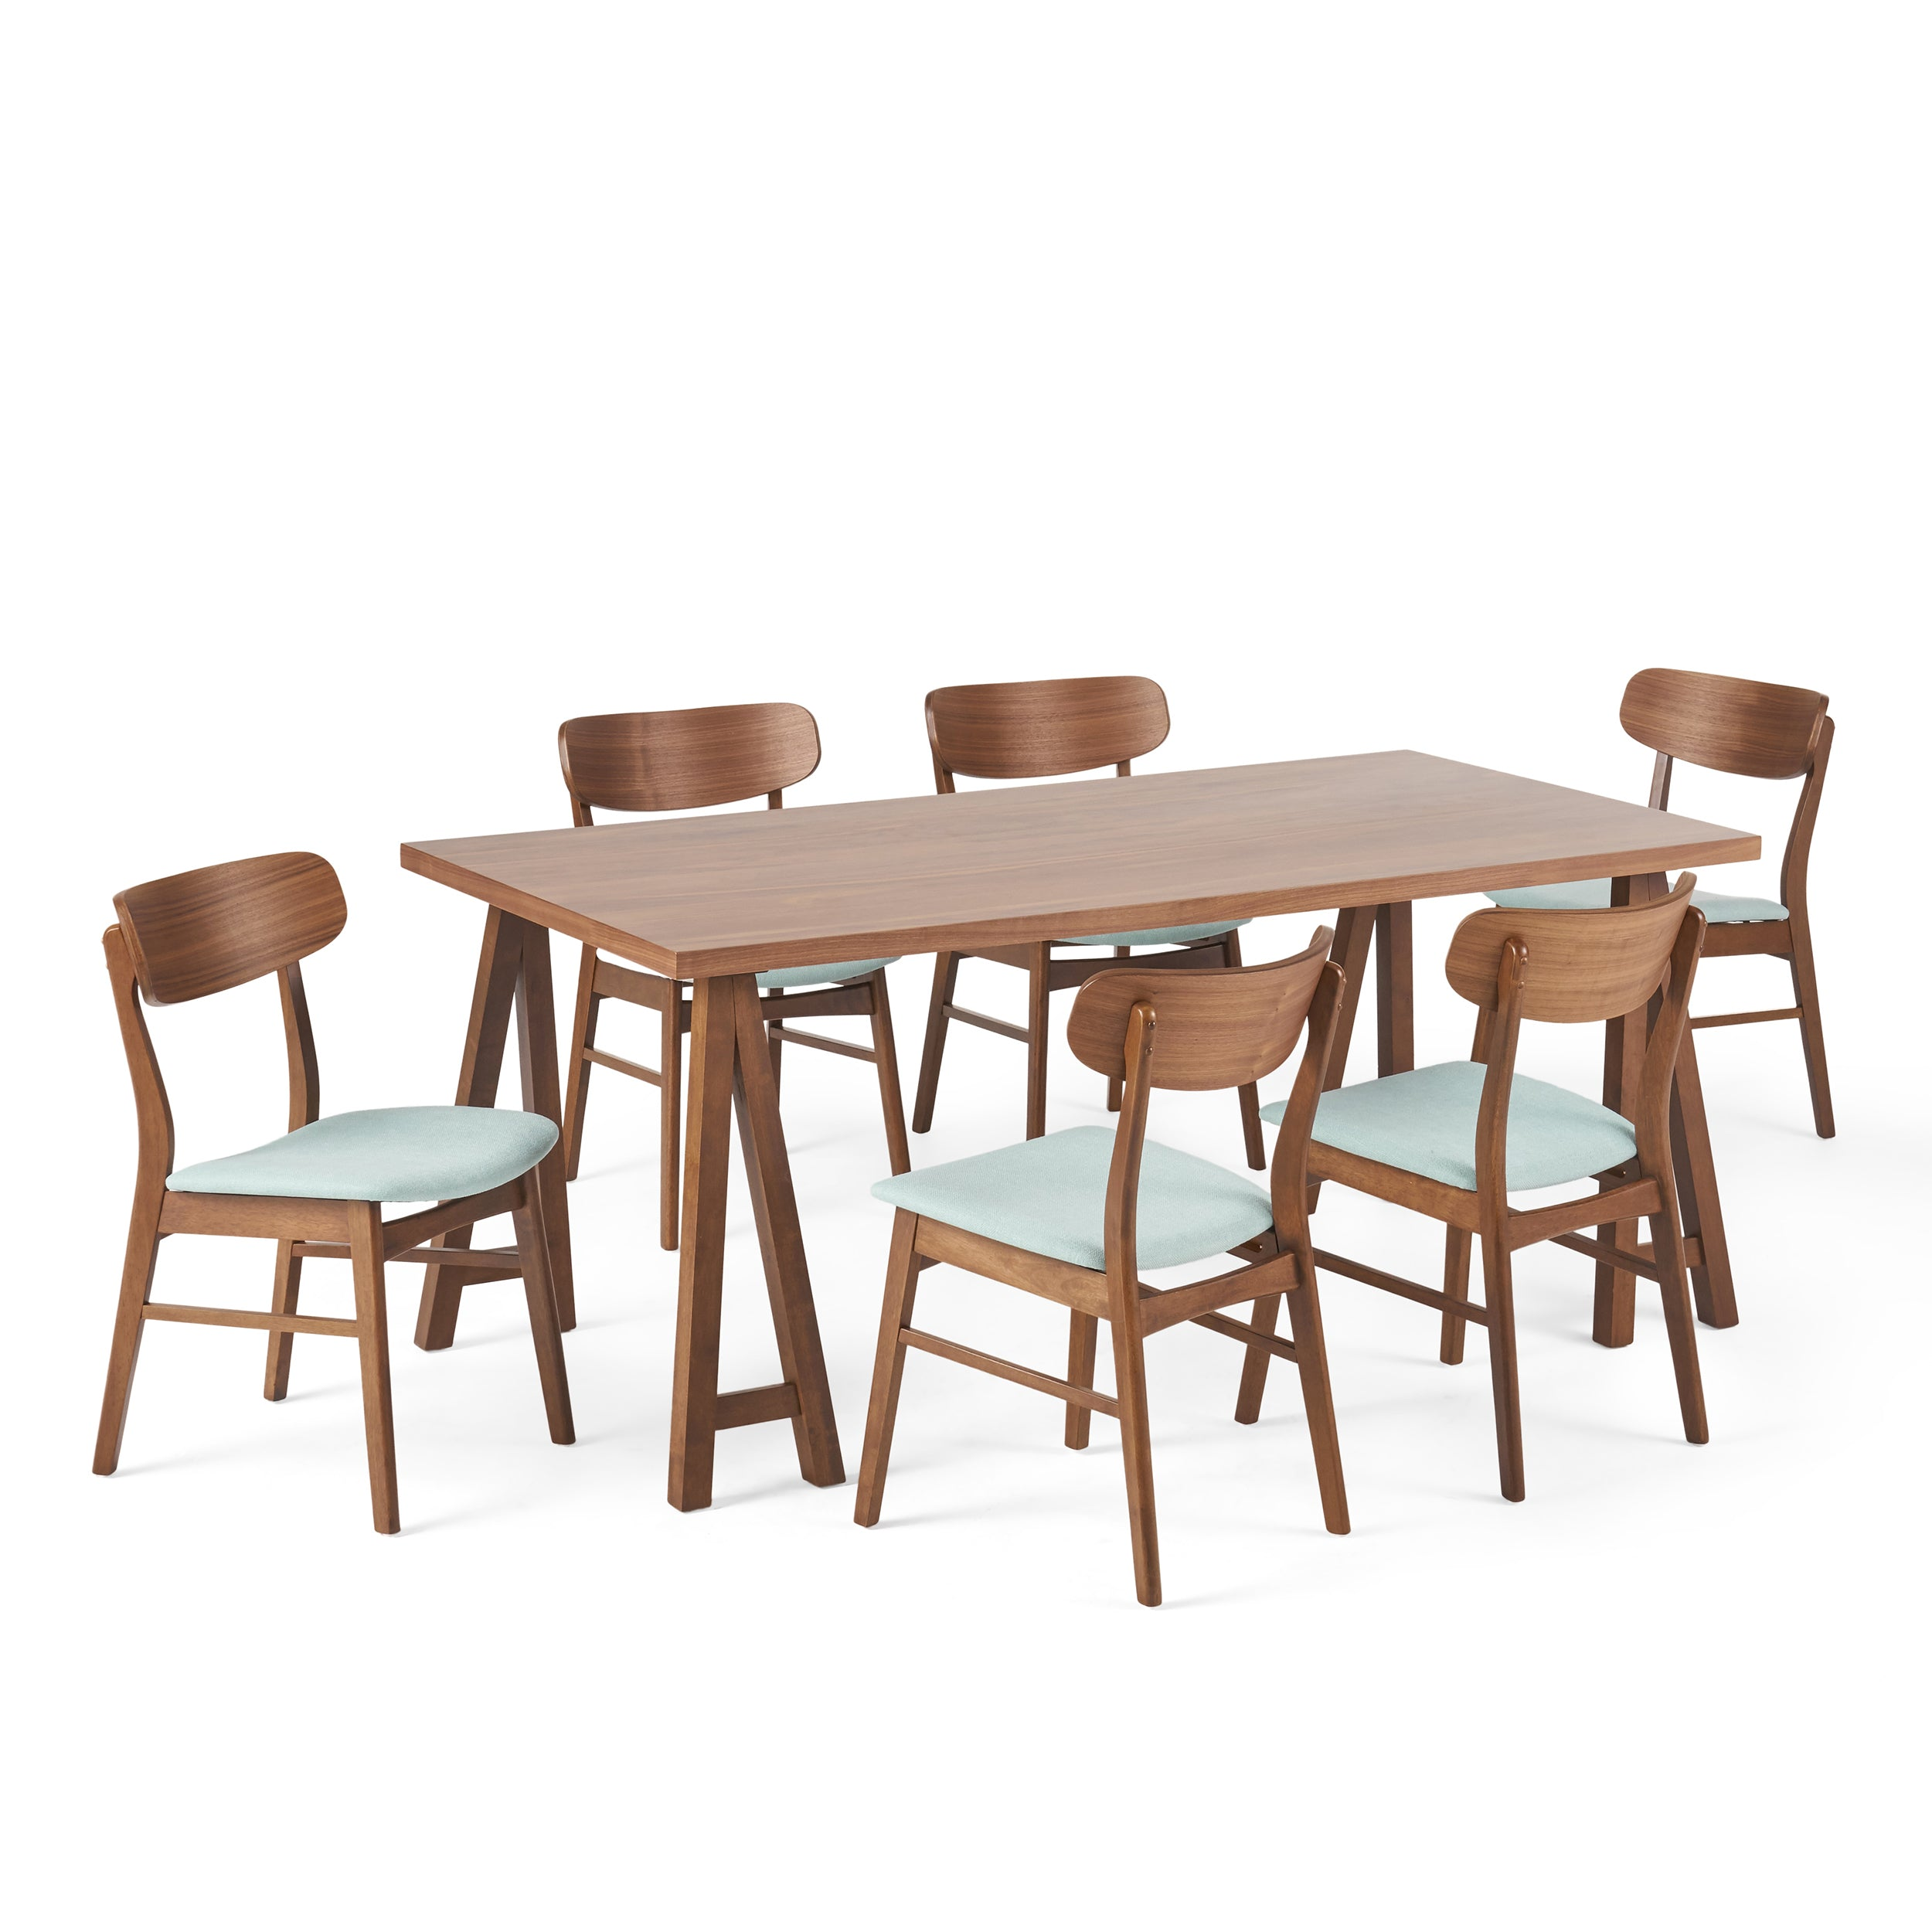 Alexis Mid Century Modern 7 Piece Dining Set with A Frame Table MintWalnut